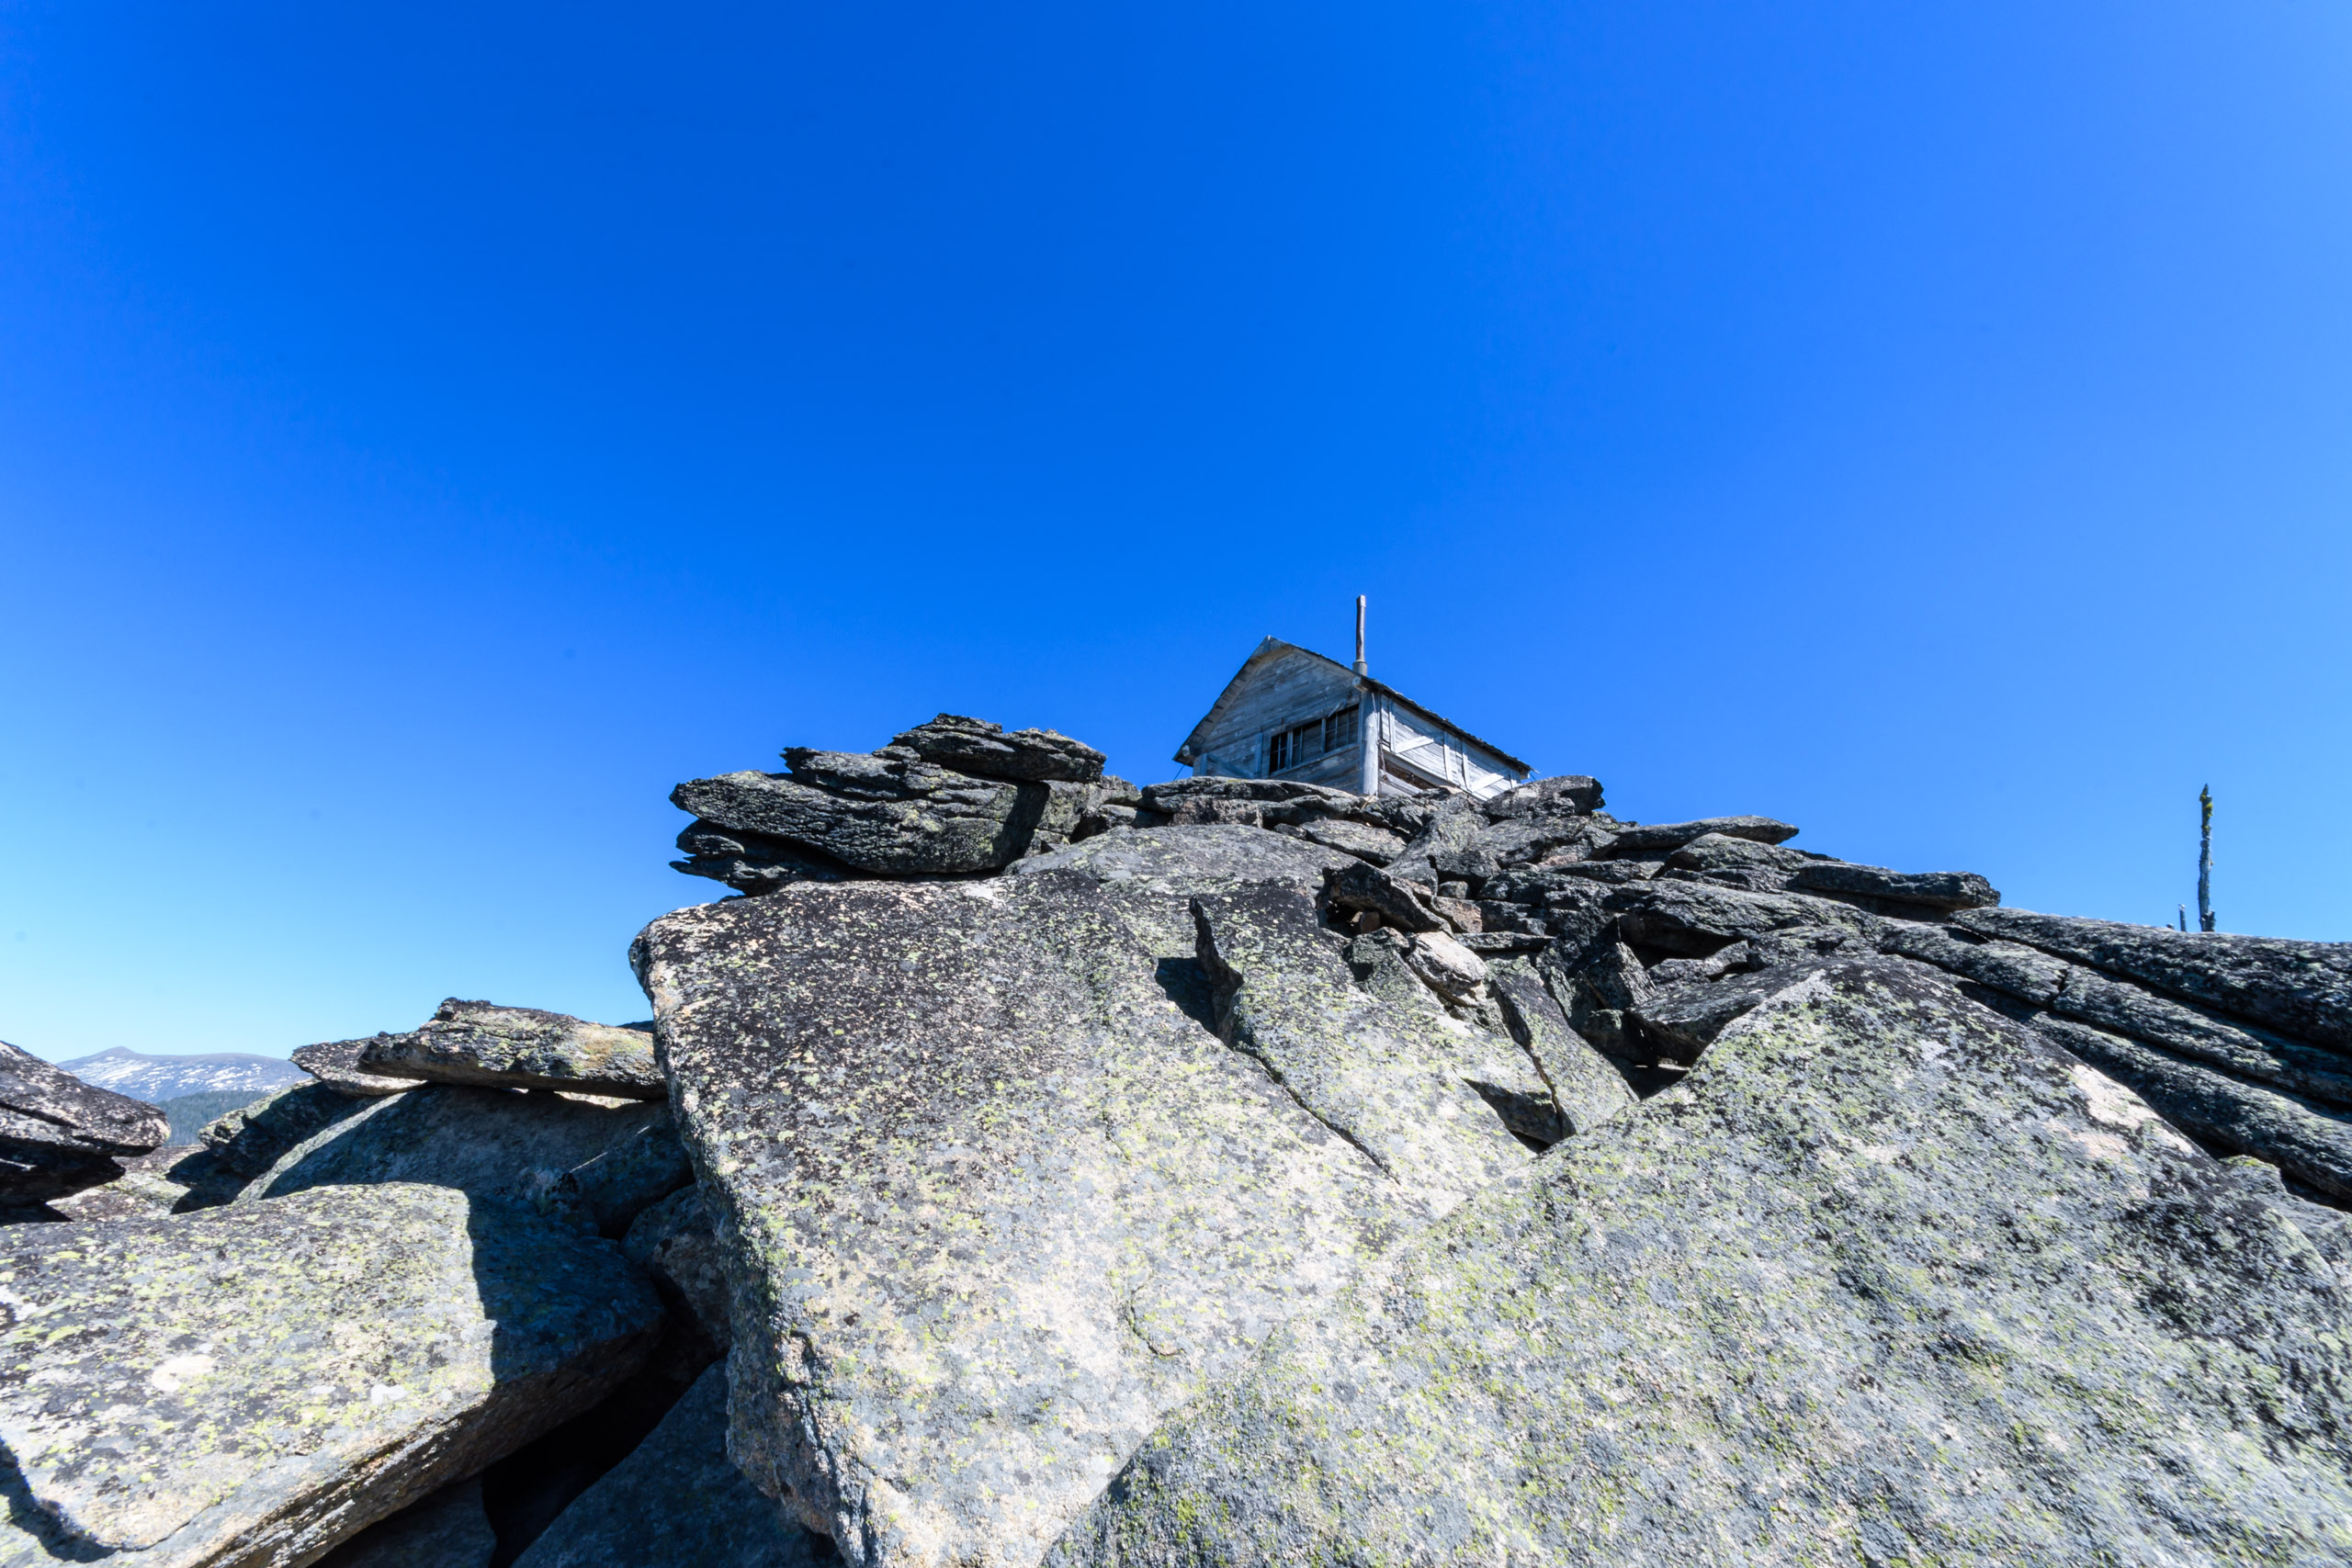 Skookum Butte Lookout is an old L-5 log and frame cabin, and only one of three remaining intact